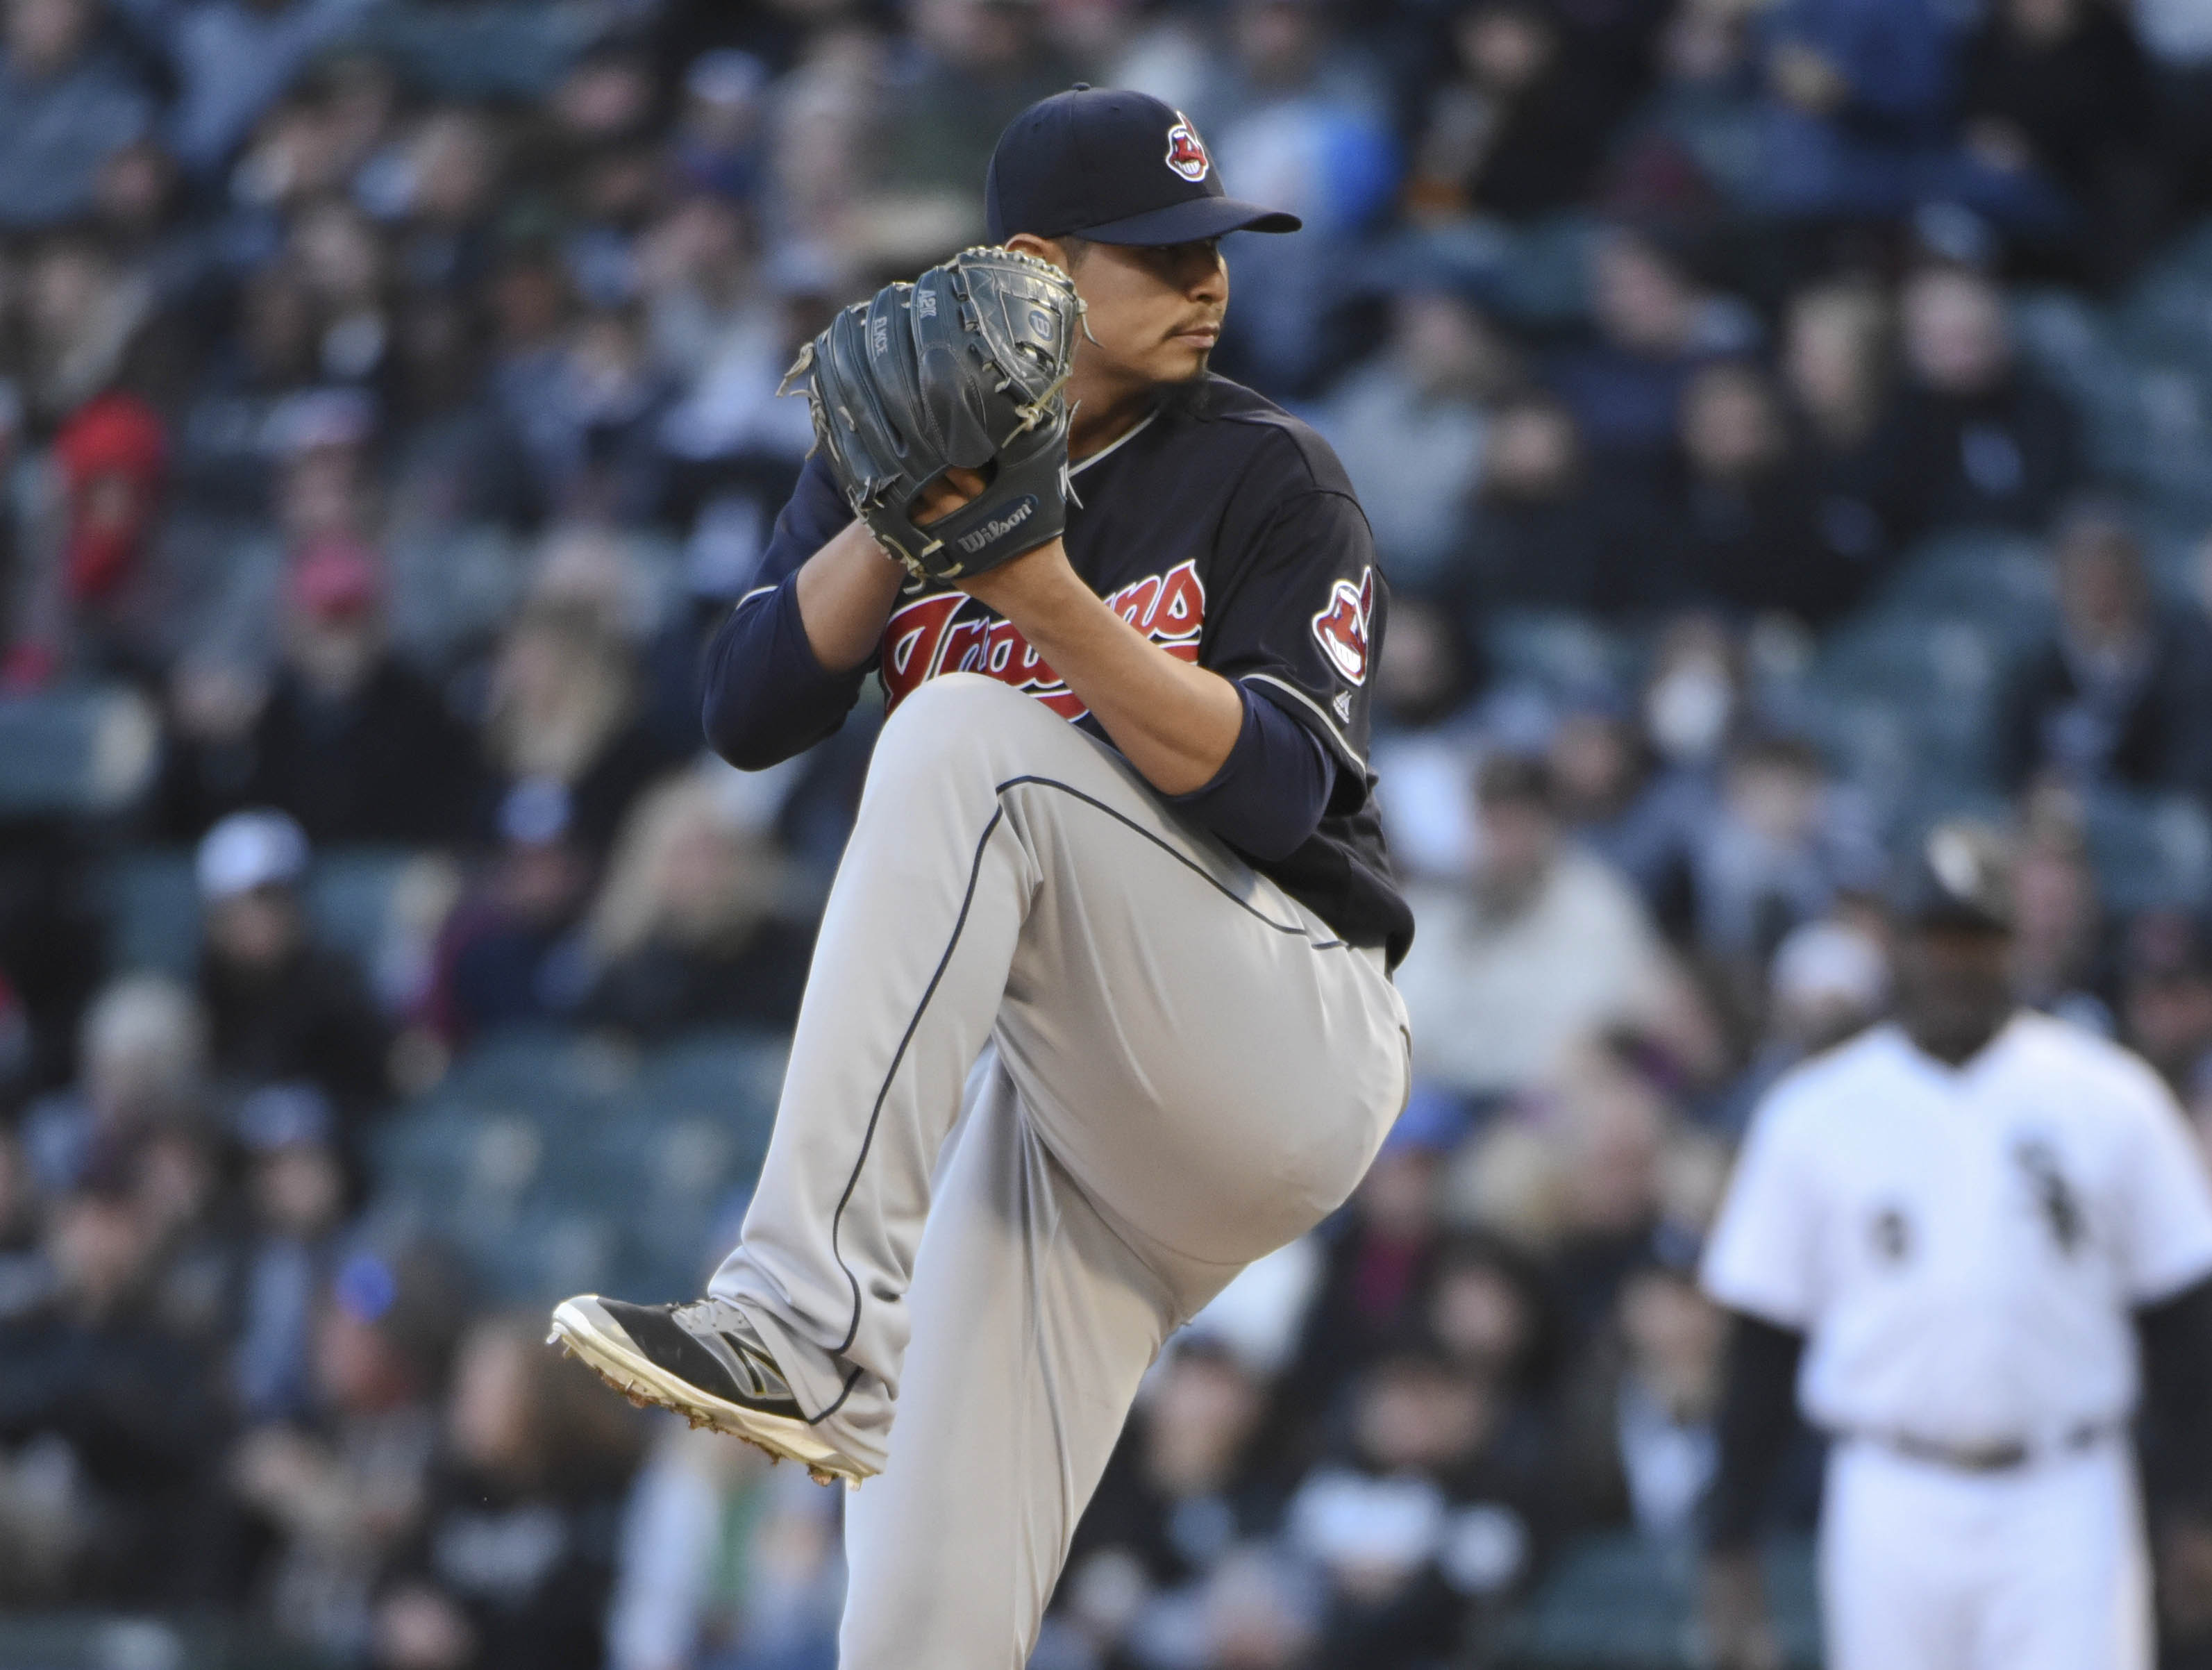 10025795-mlb-cleveland-indians-at-chicago-white-sox